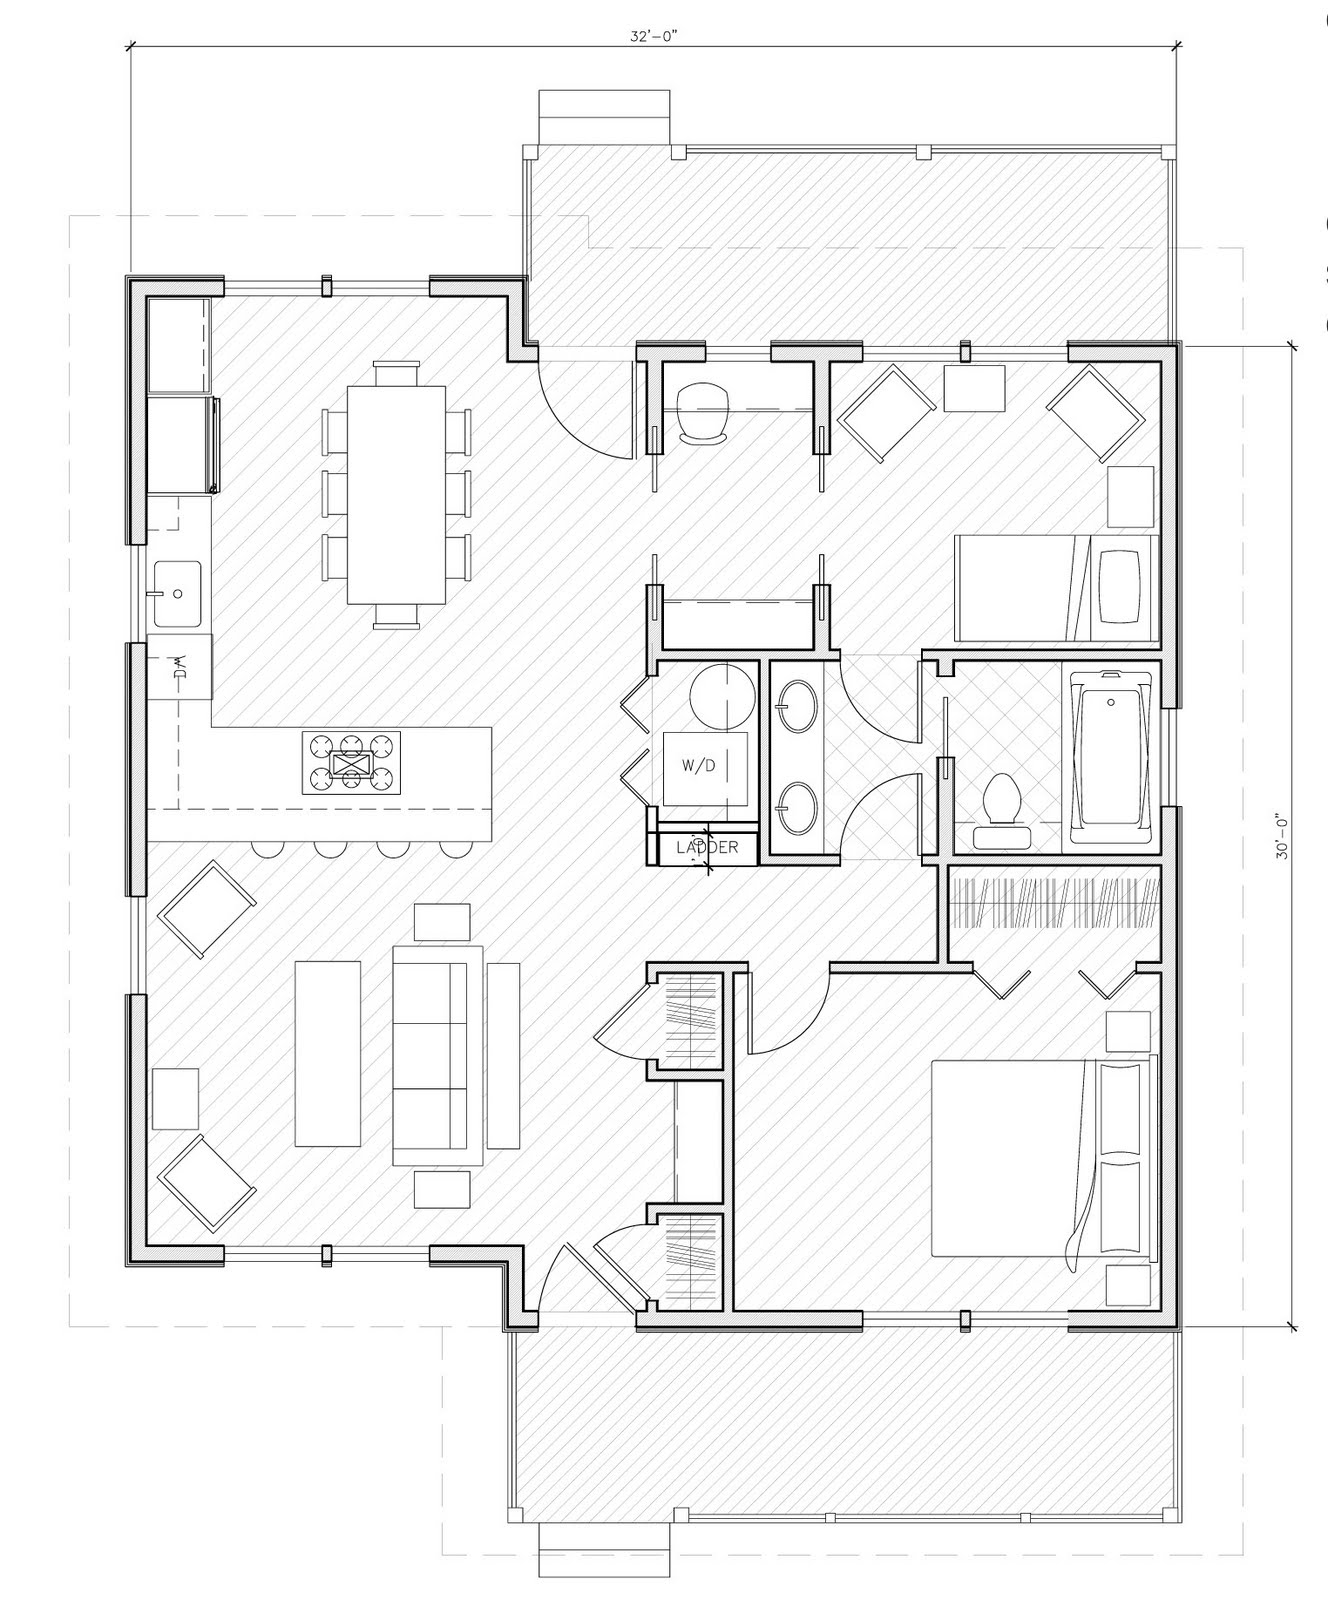 Design banter d a home plans 3 plans under 1 000 square feet 1000 sq feet house plans